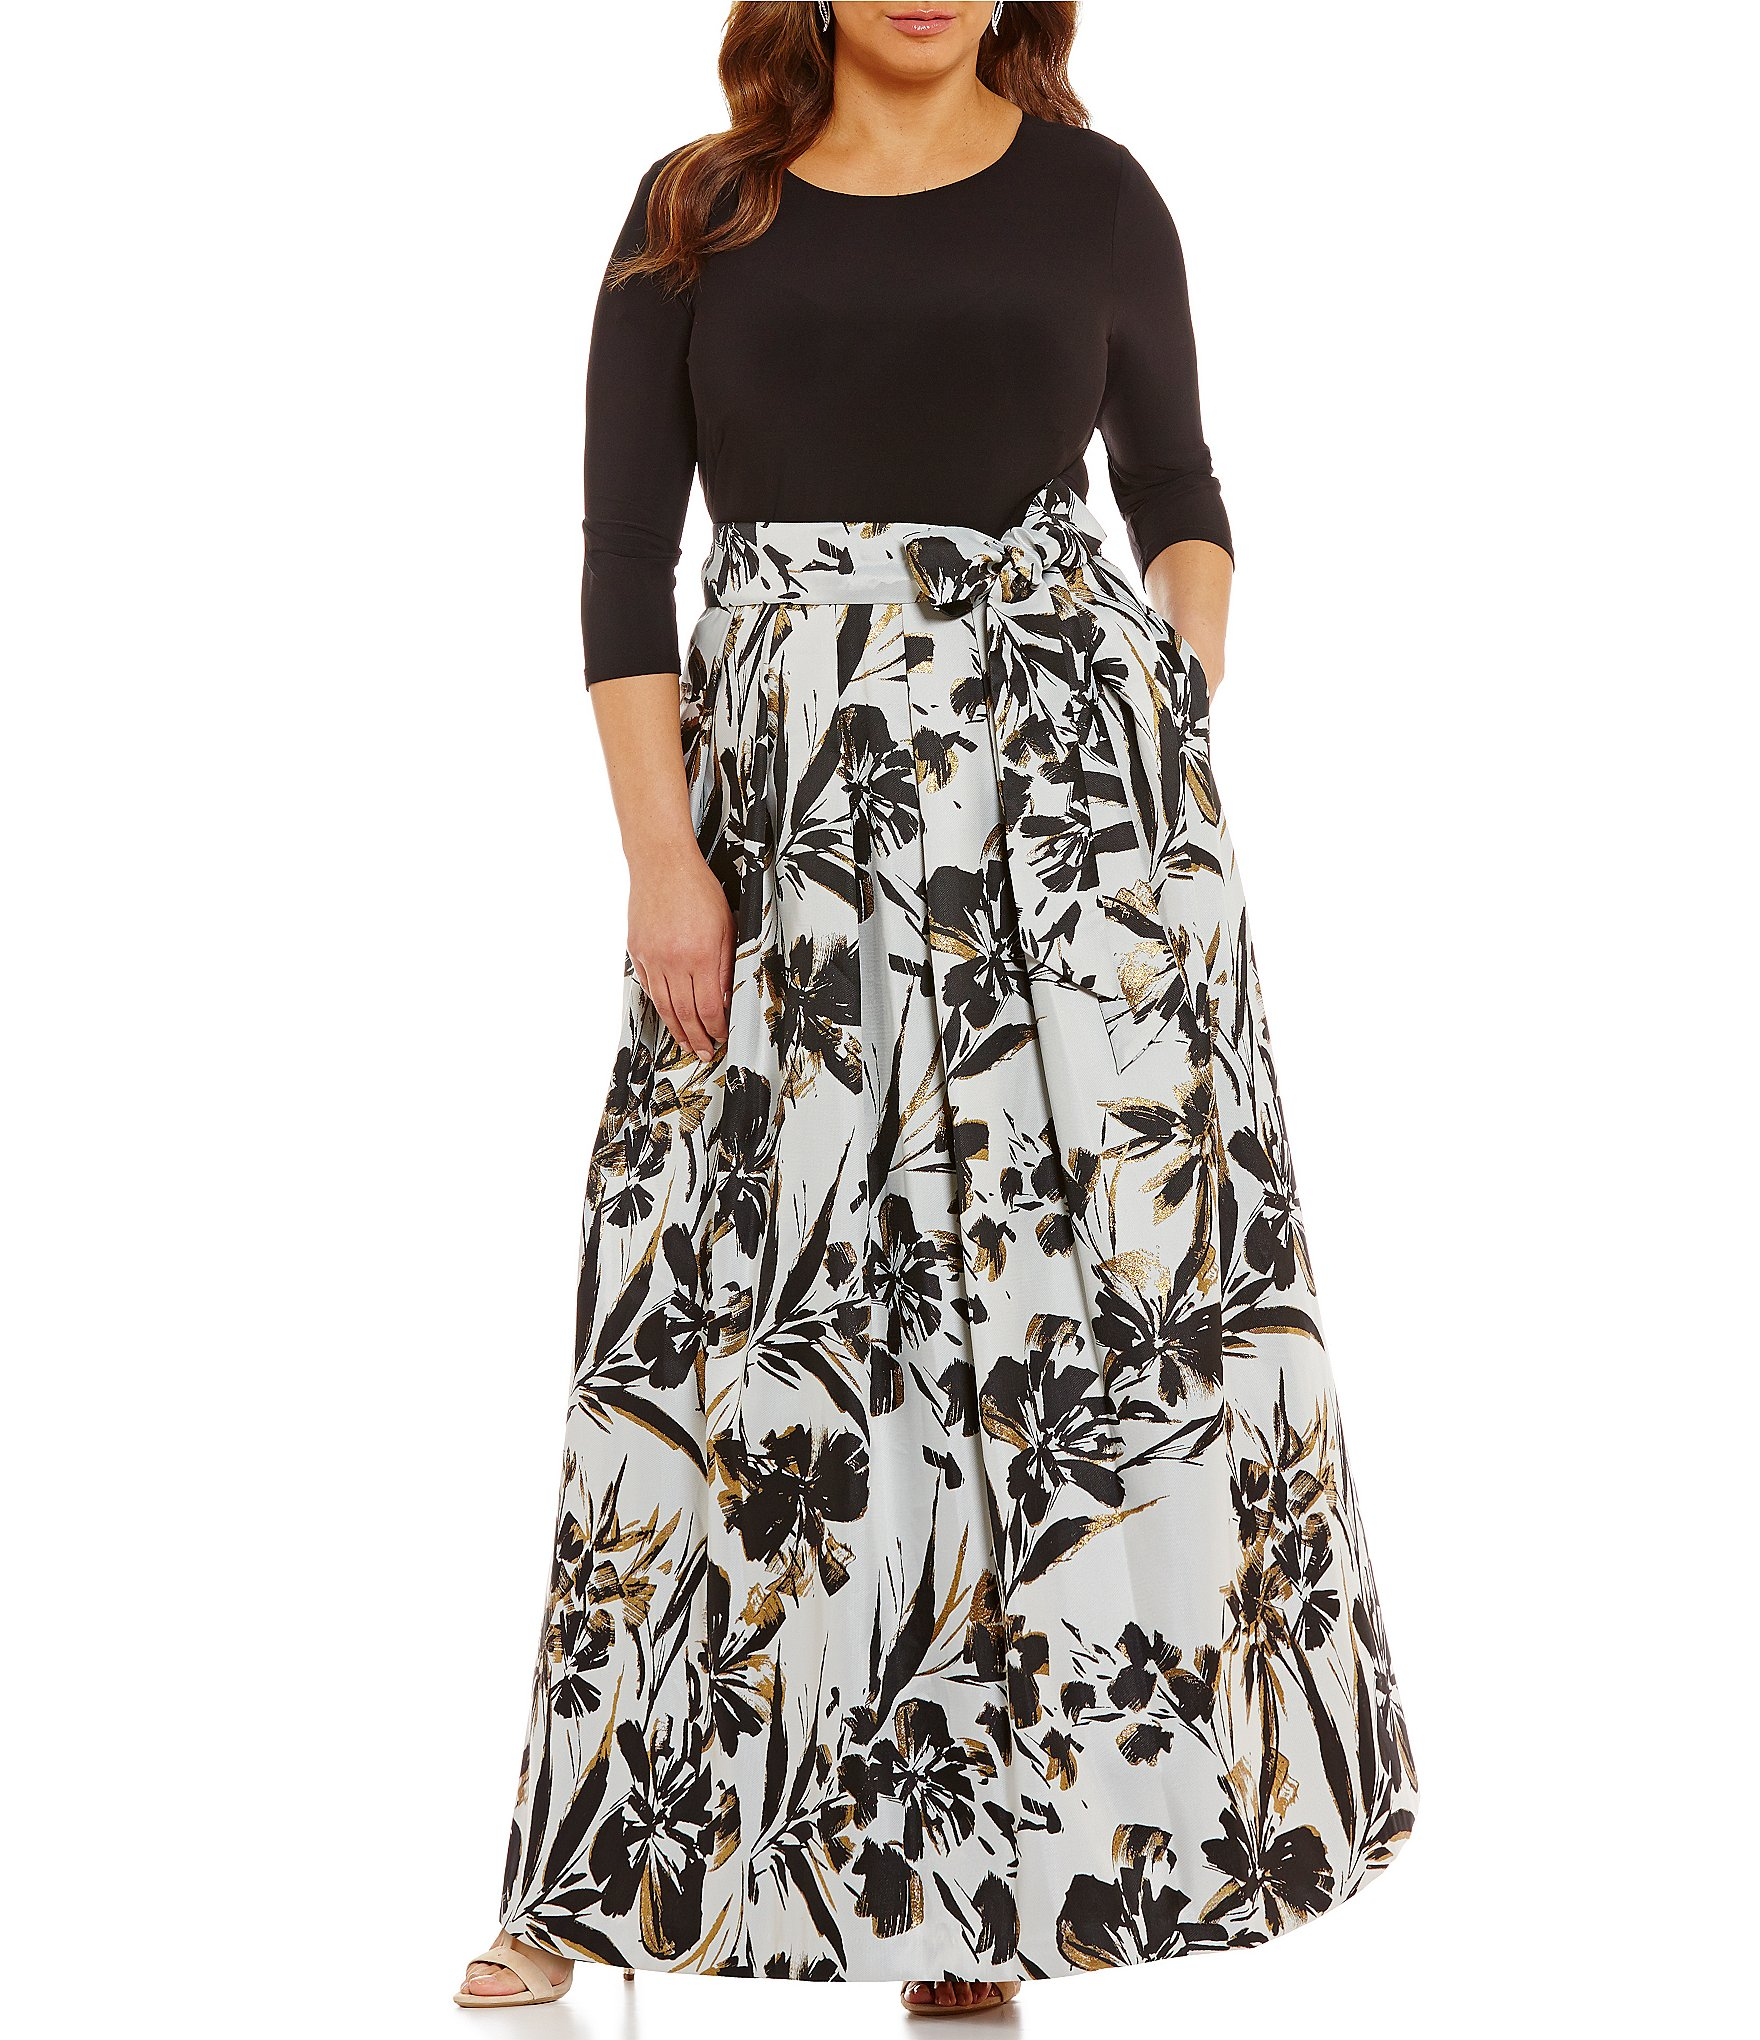 Eliza j plus printed ballgown dillards for Dillards plus size wedding guest dresses